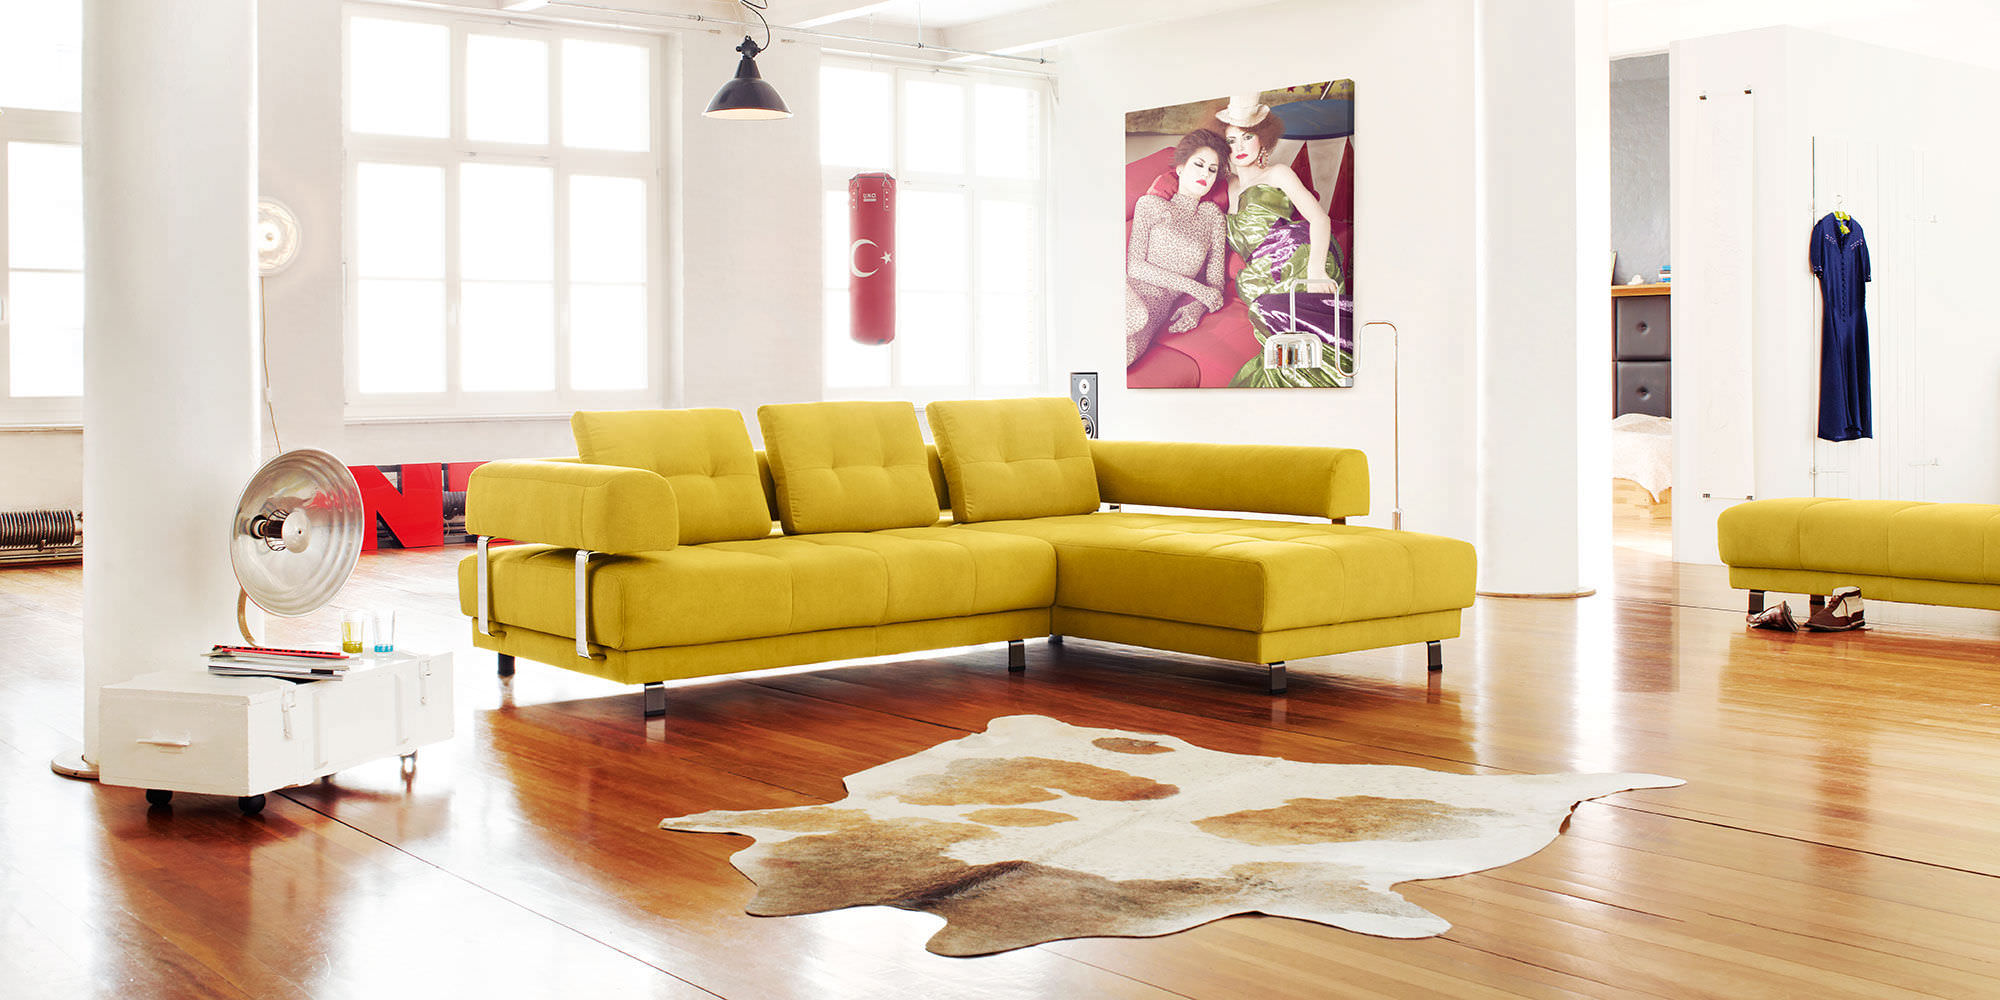 Marvelous Modular Sofa / Corner / Contemporary / Leather   DARIA